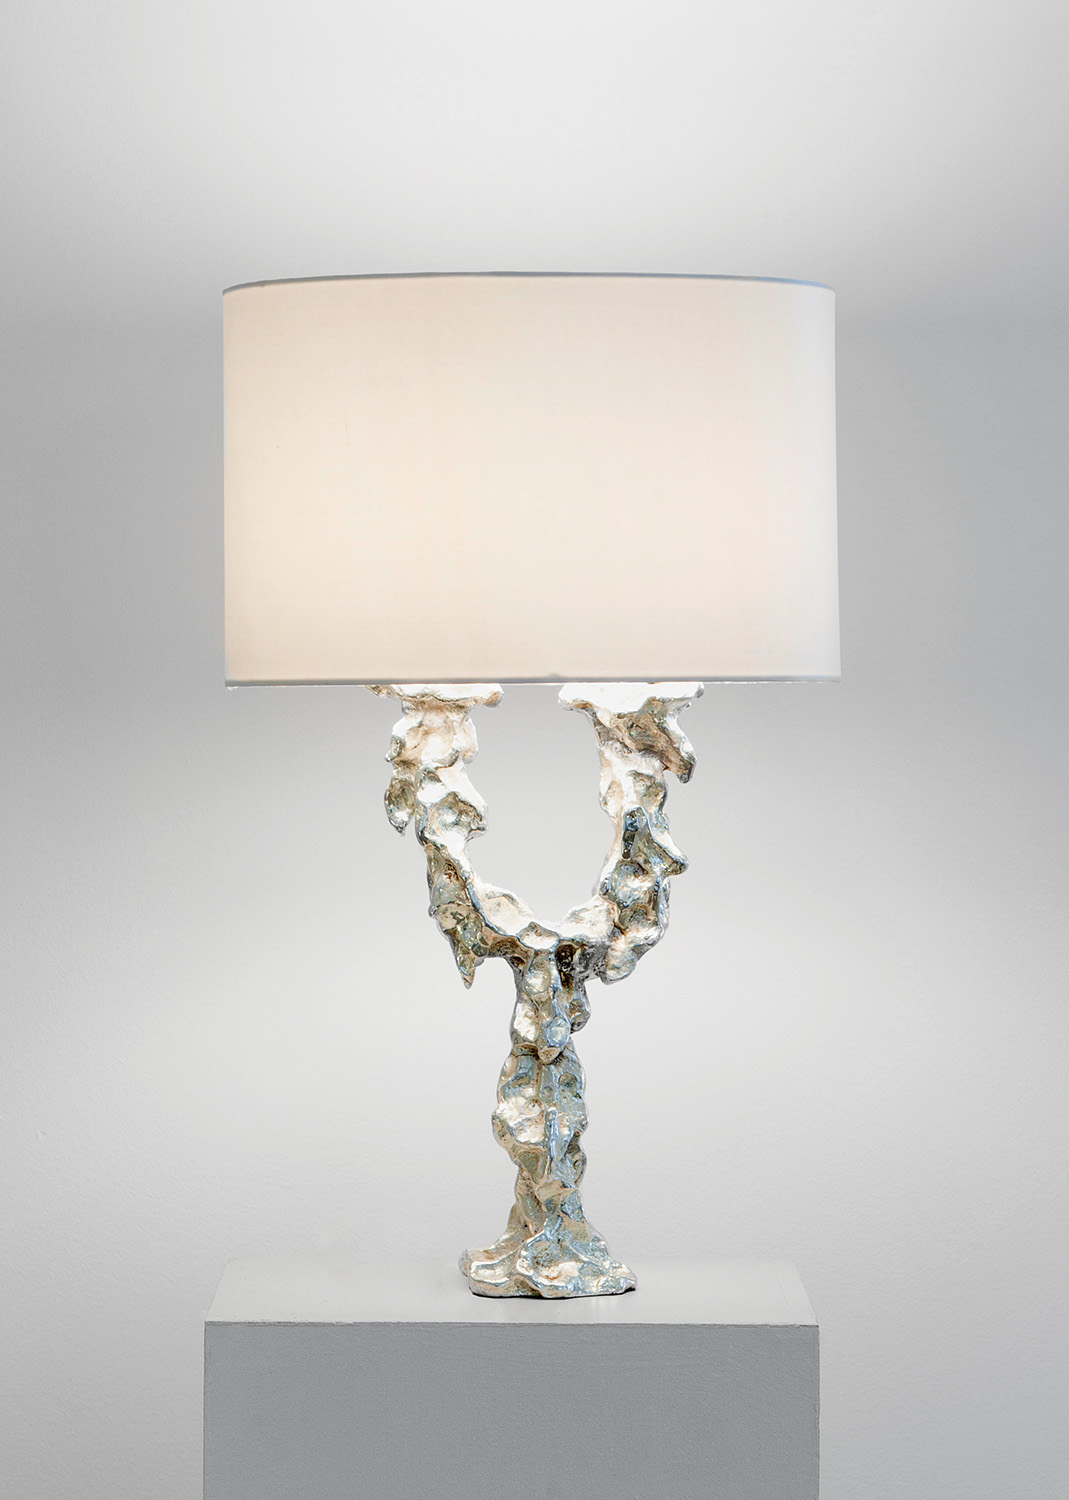 5. MB Table Lamp 'Grotto' cream shade.jpg